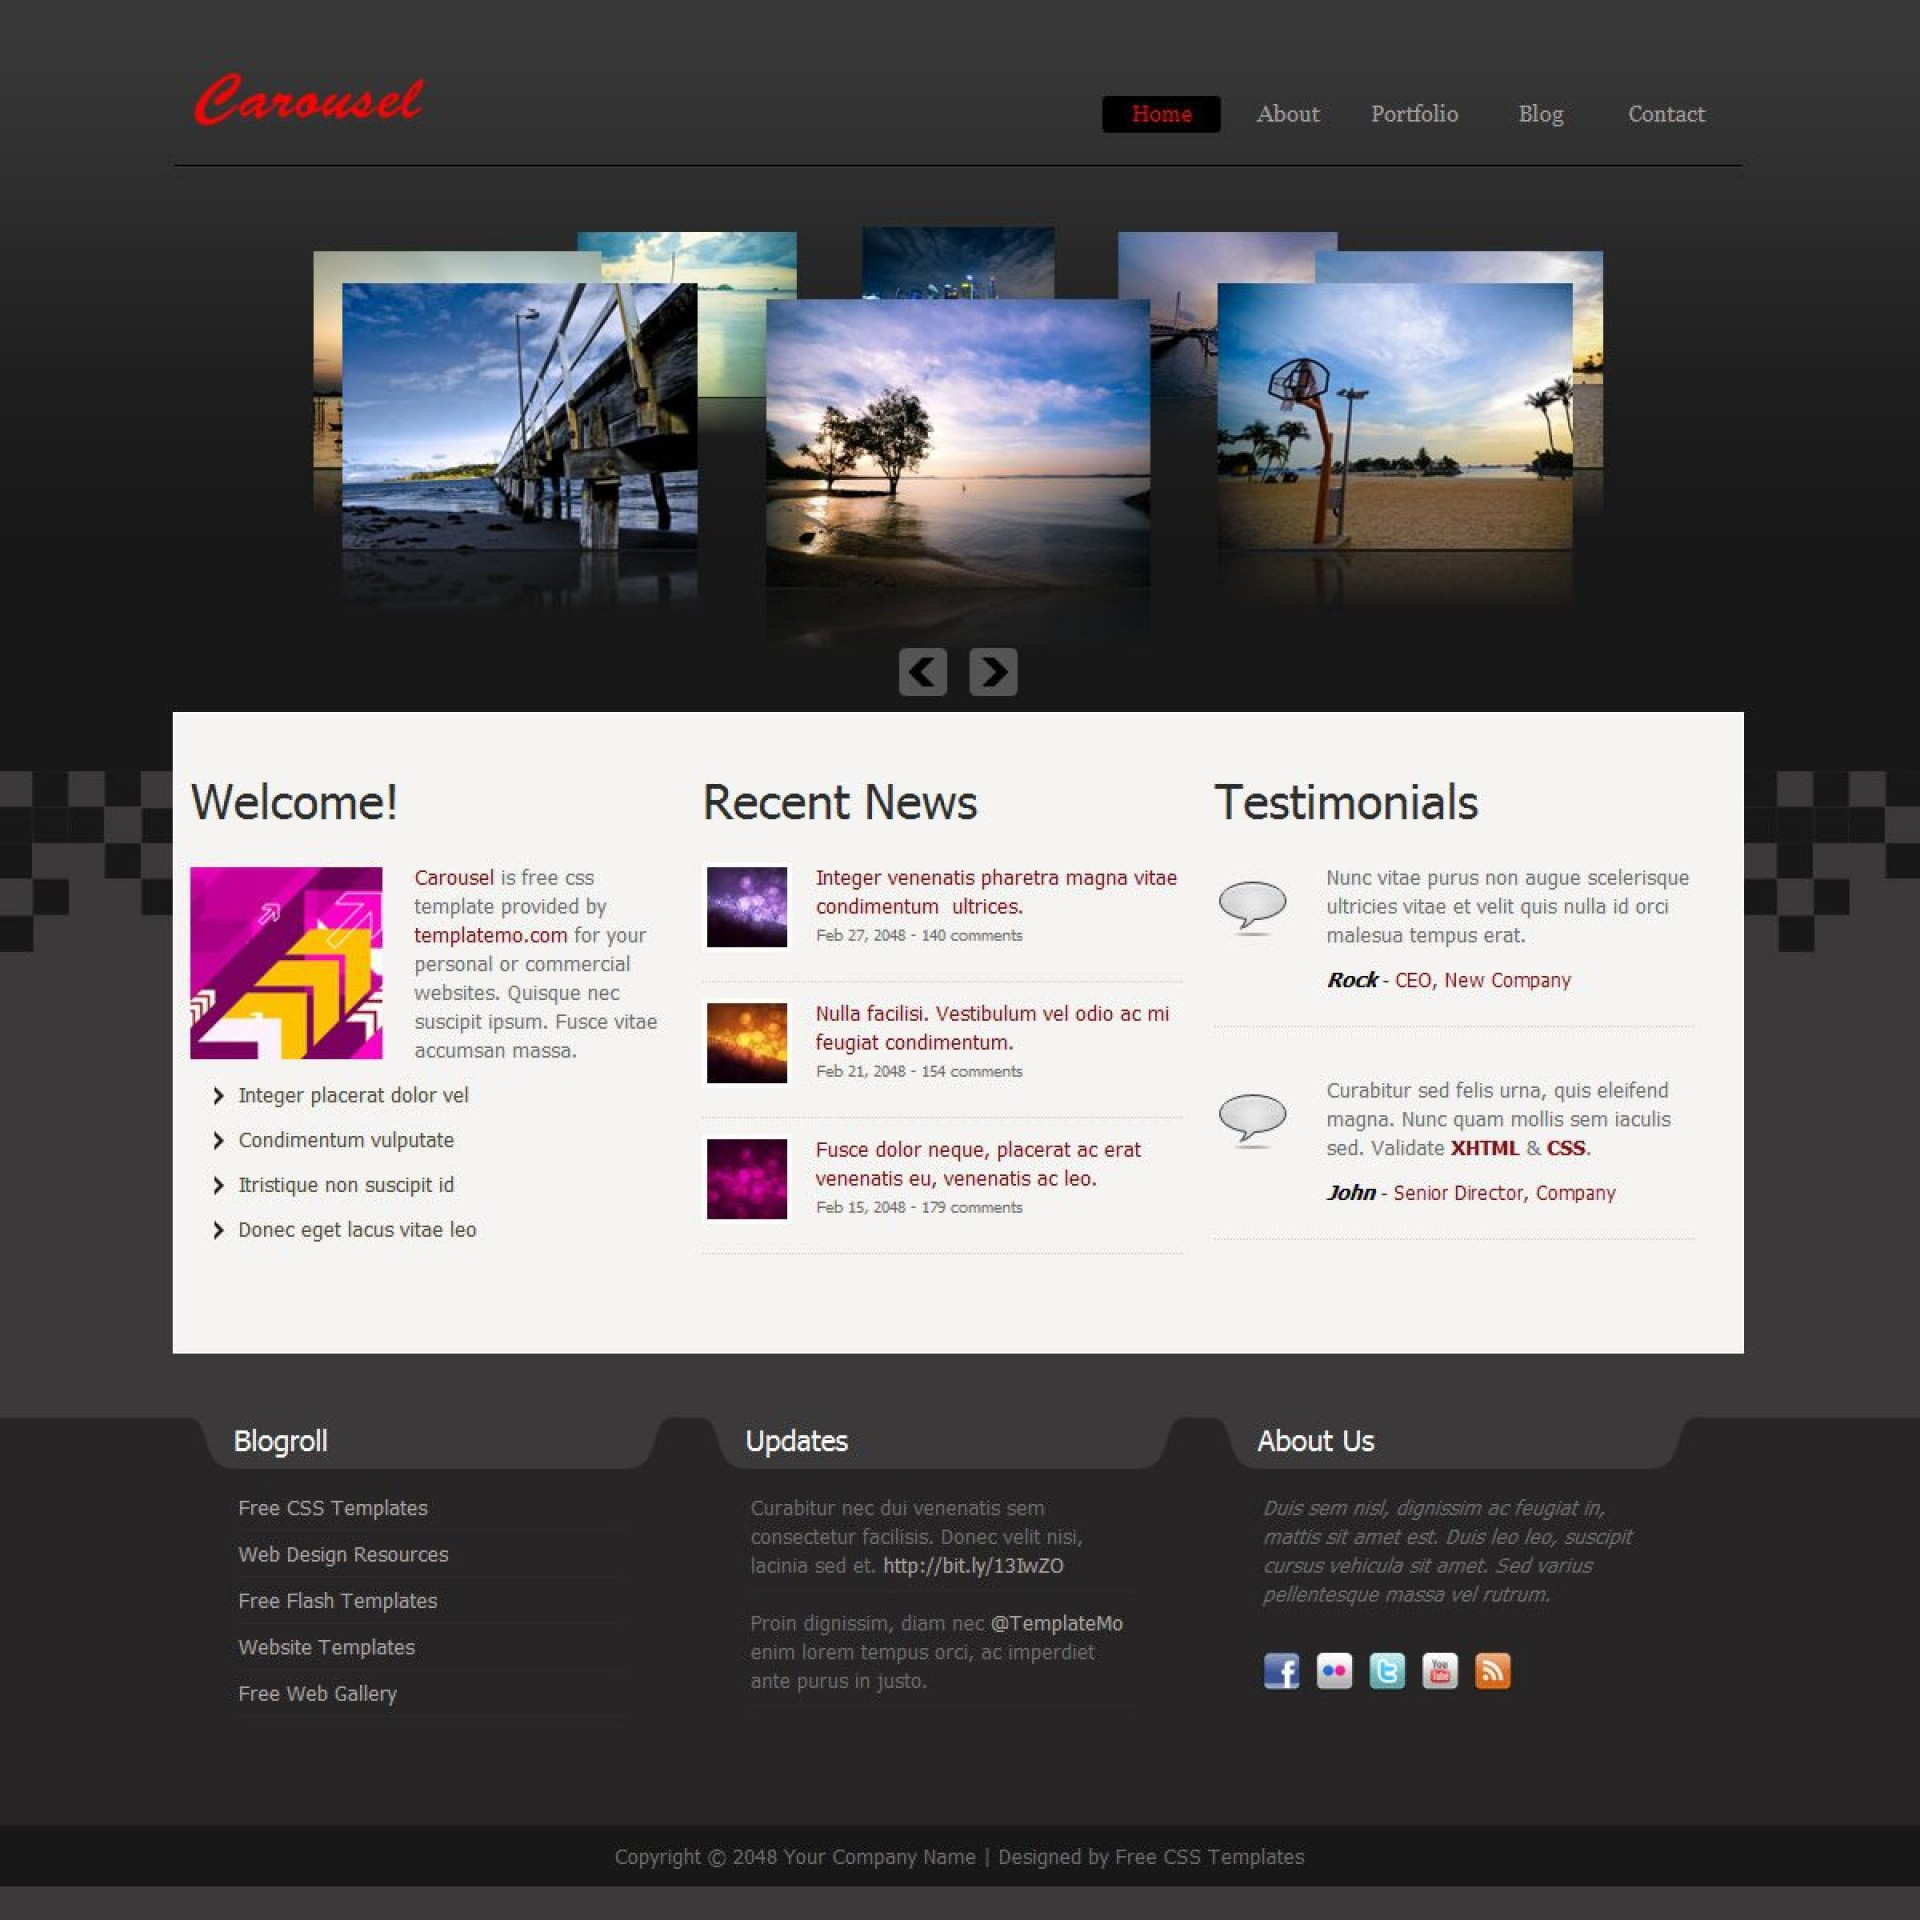 009 Unusual Free Web Template Download Html And Cs Jquery High Def  Website Slider Responsive For It Company1920